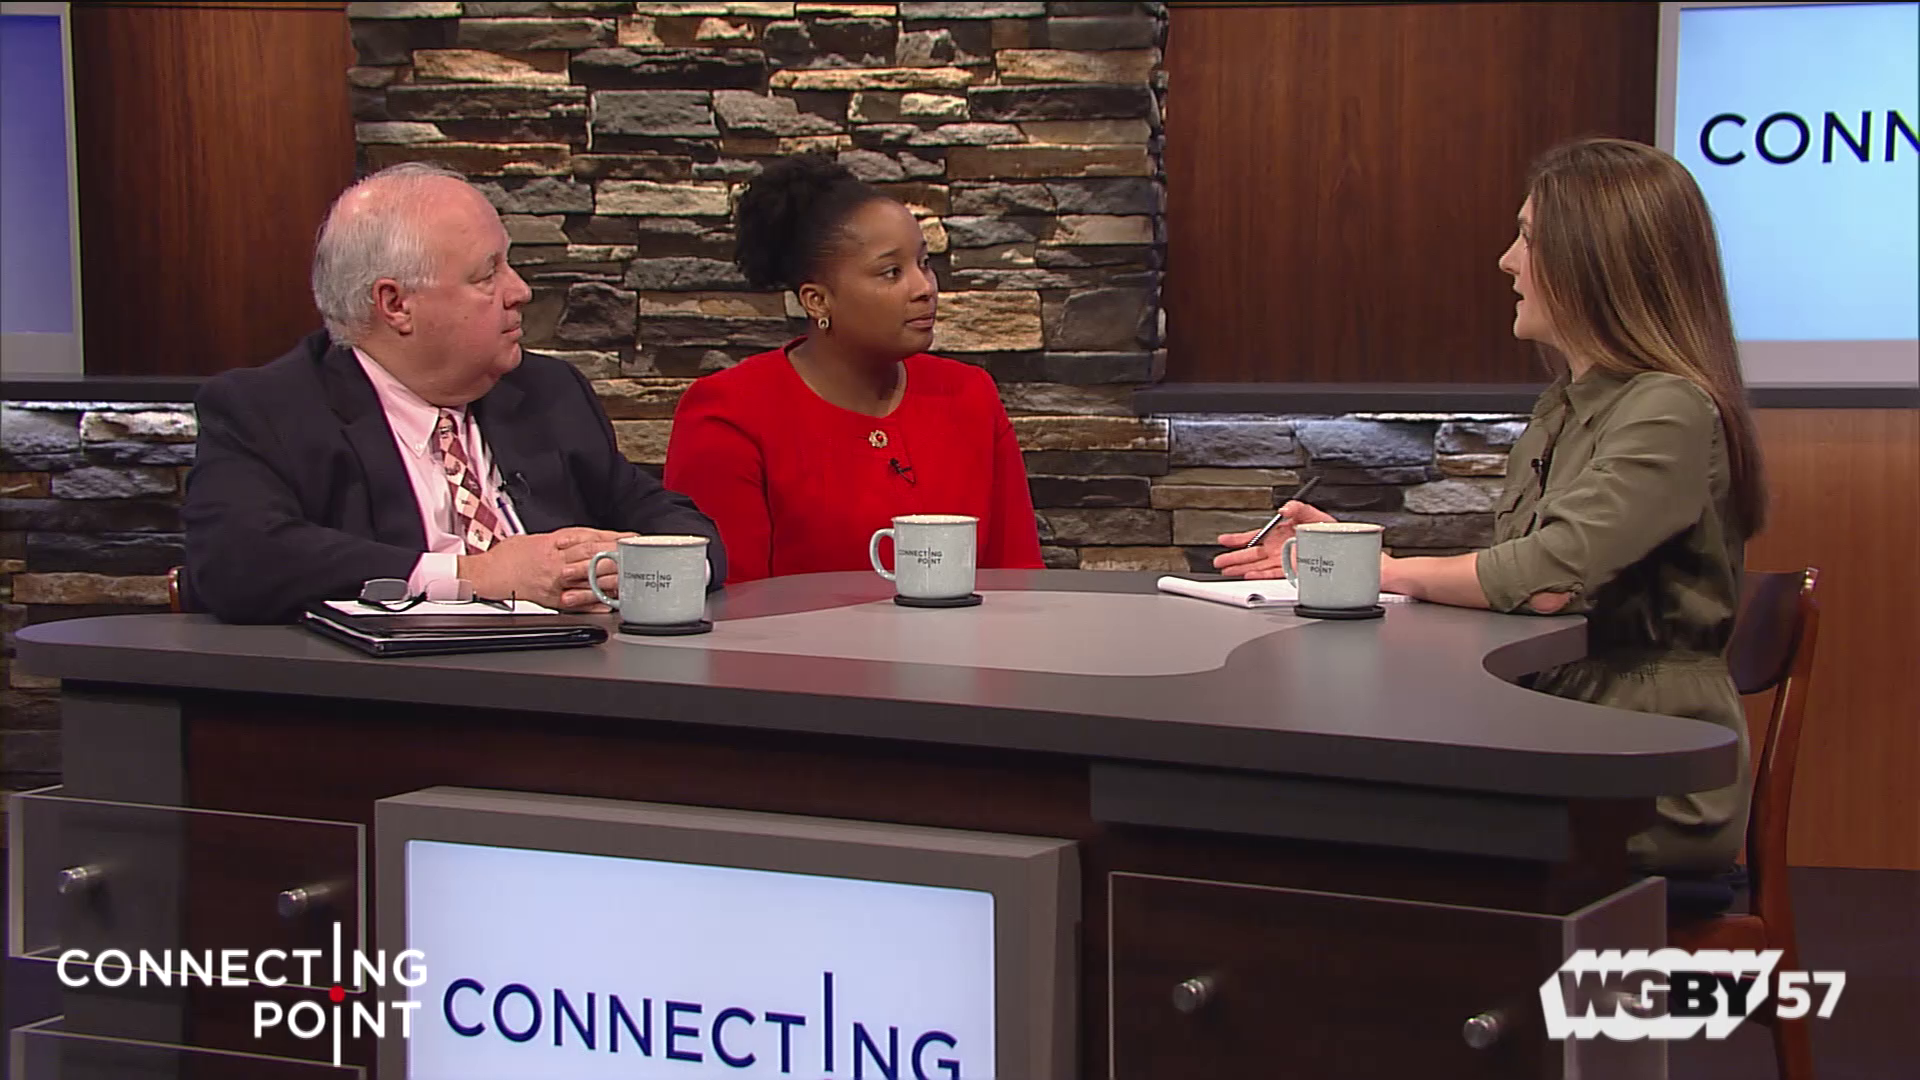 Superintendent Daniel Warwick & School Committee member LaTonia Monroe Naylor discuss what the district is doing to increase Springfield Public Schools safety and make sure teachers and students feel safe in their classrooms. Springfield, MA is the largest school district in western Massachusetts.